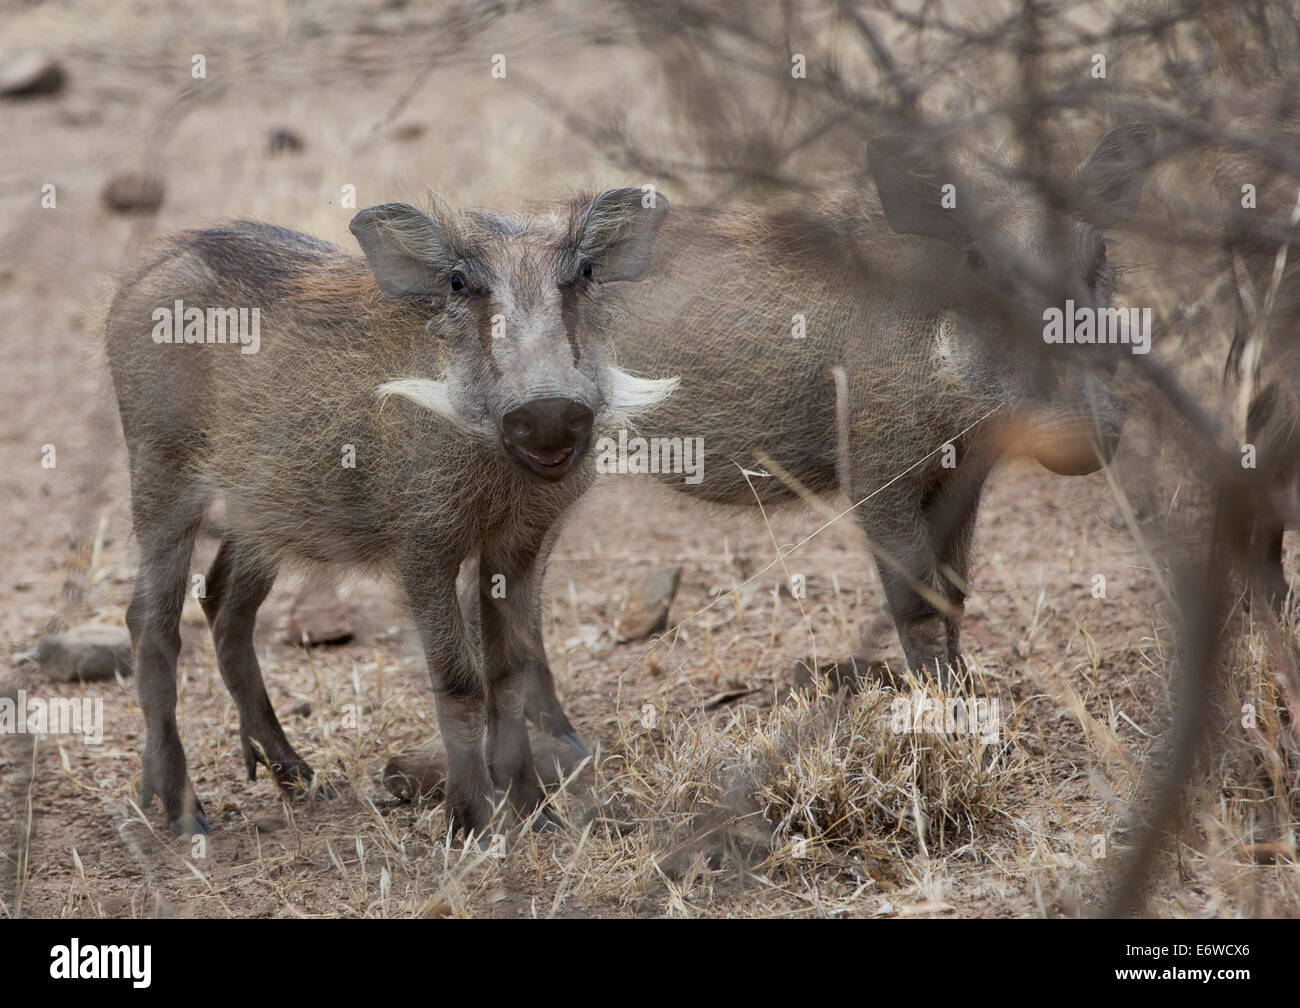 A Group Of Warthogs, Phacochoerus Aethiopicus, In Awash Park, Ethiopia - Stock Image